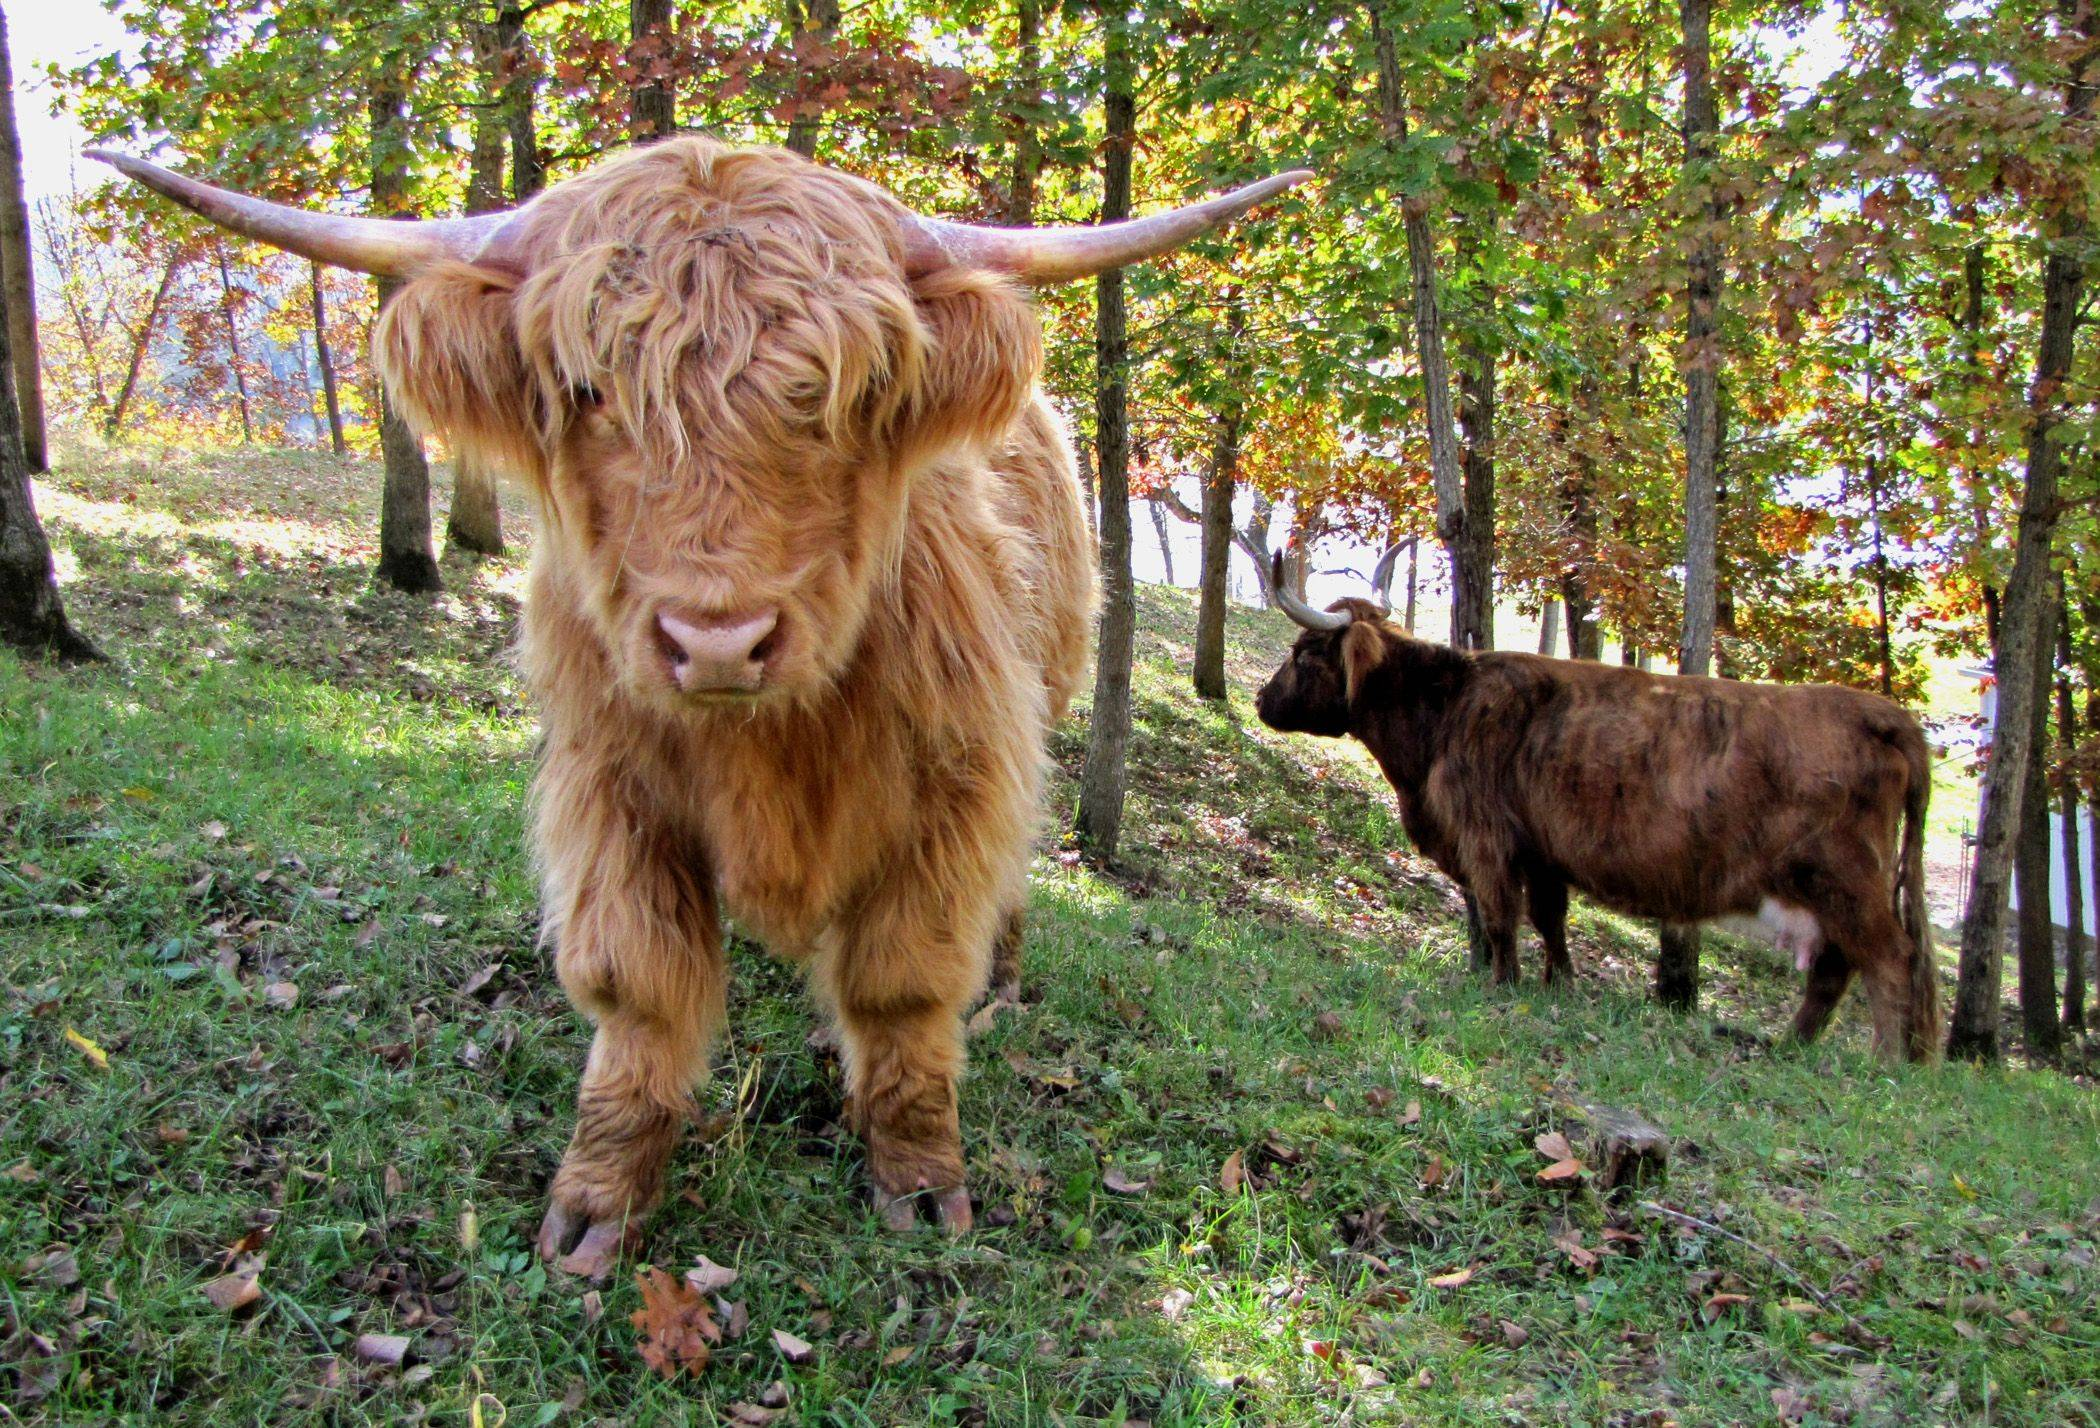 We came across this Highland steer on a beautiful fall day near the Mississippi River. This breed on cattle is from the Highlands of Scotland and I have never seen it before. He was as curious of me as I was of him.